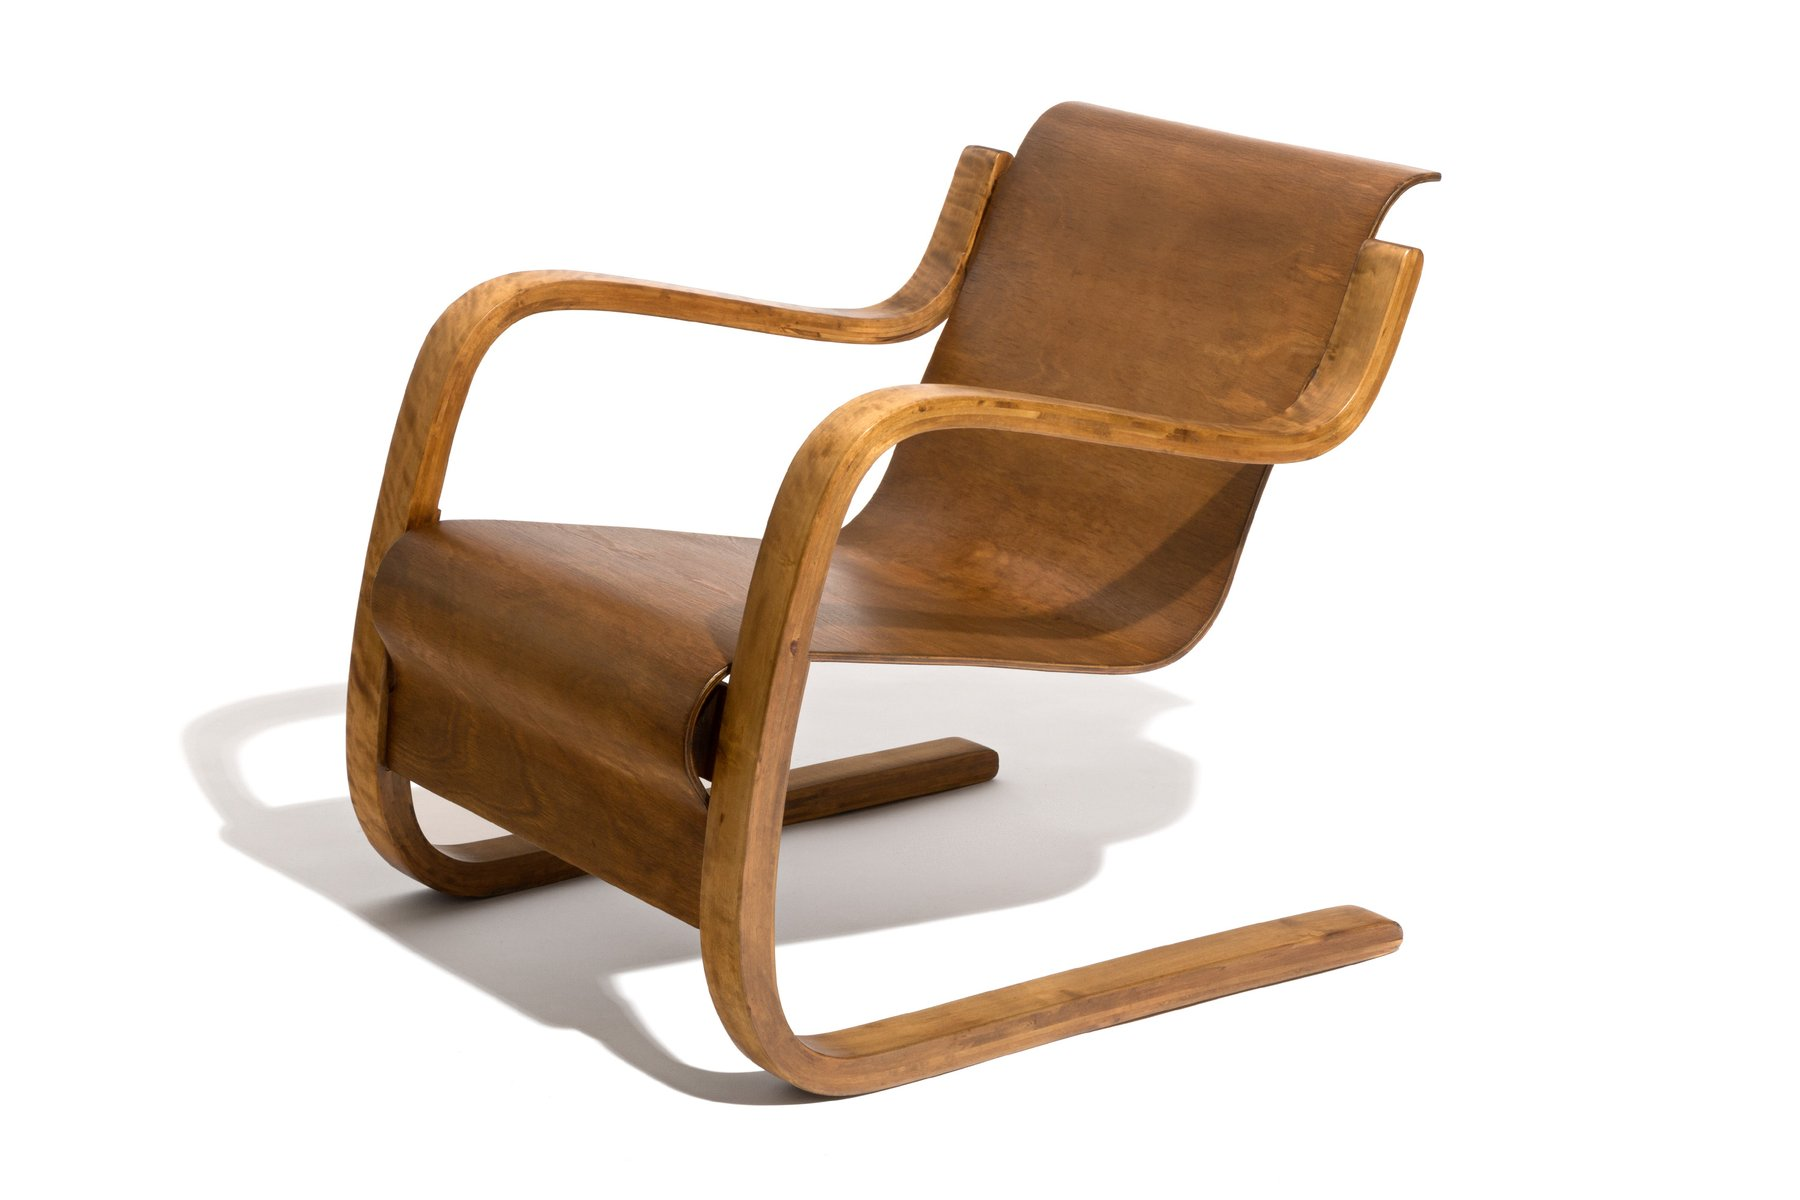 Cantilever model 31 42 chair by alvar aalto for o y for Chaise alvar aalto